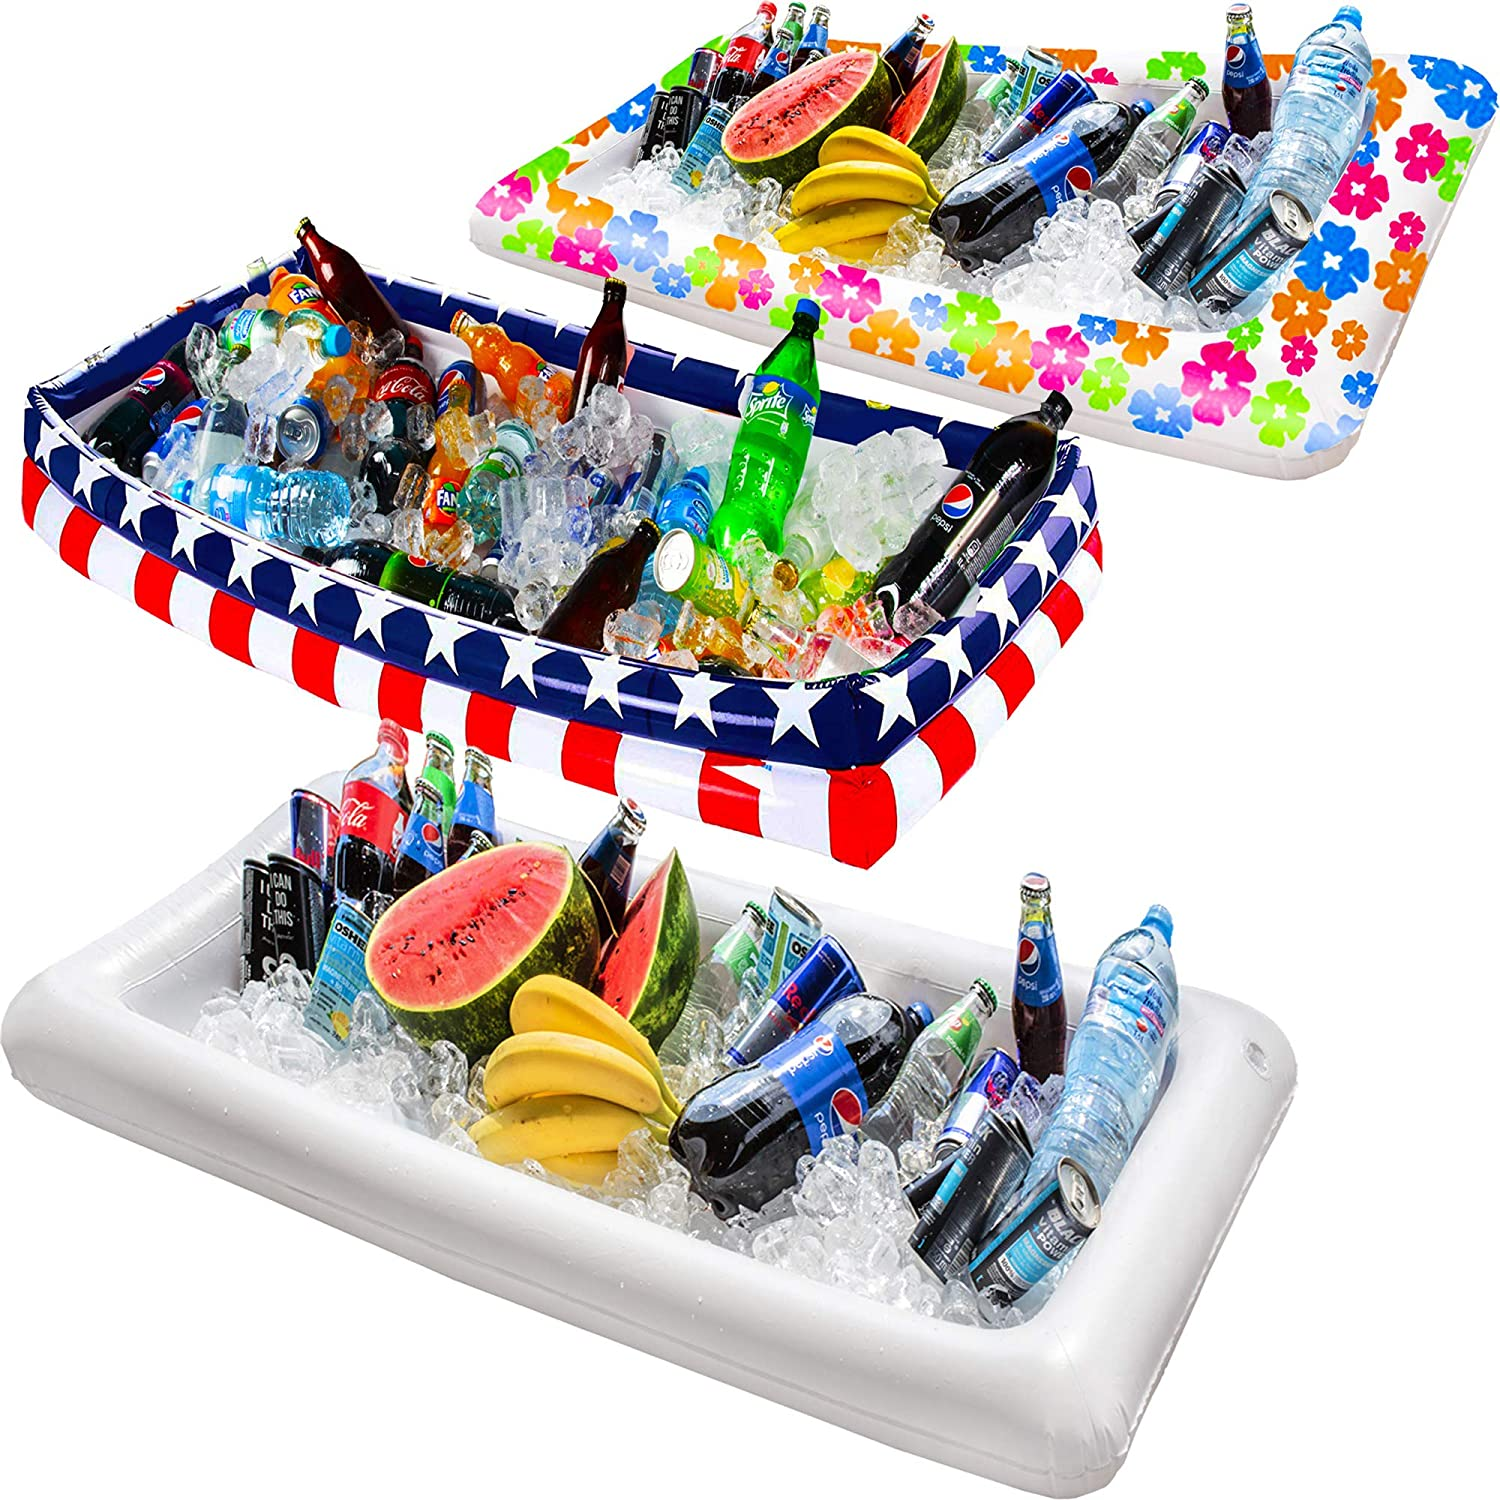 Inflatable Pool Table Serving Bar - Large Buffet Tray Server with Drain Plug - Keep Your Salads & Beverages Ice Cold - for Parties Indoor & Outdoor use Bar Party Accessories